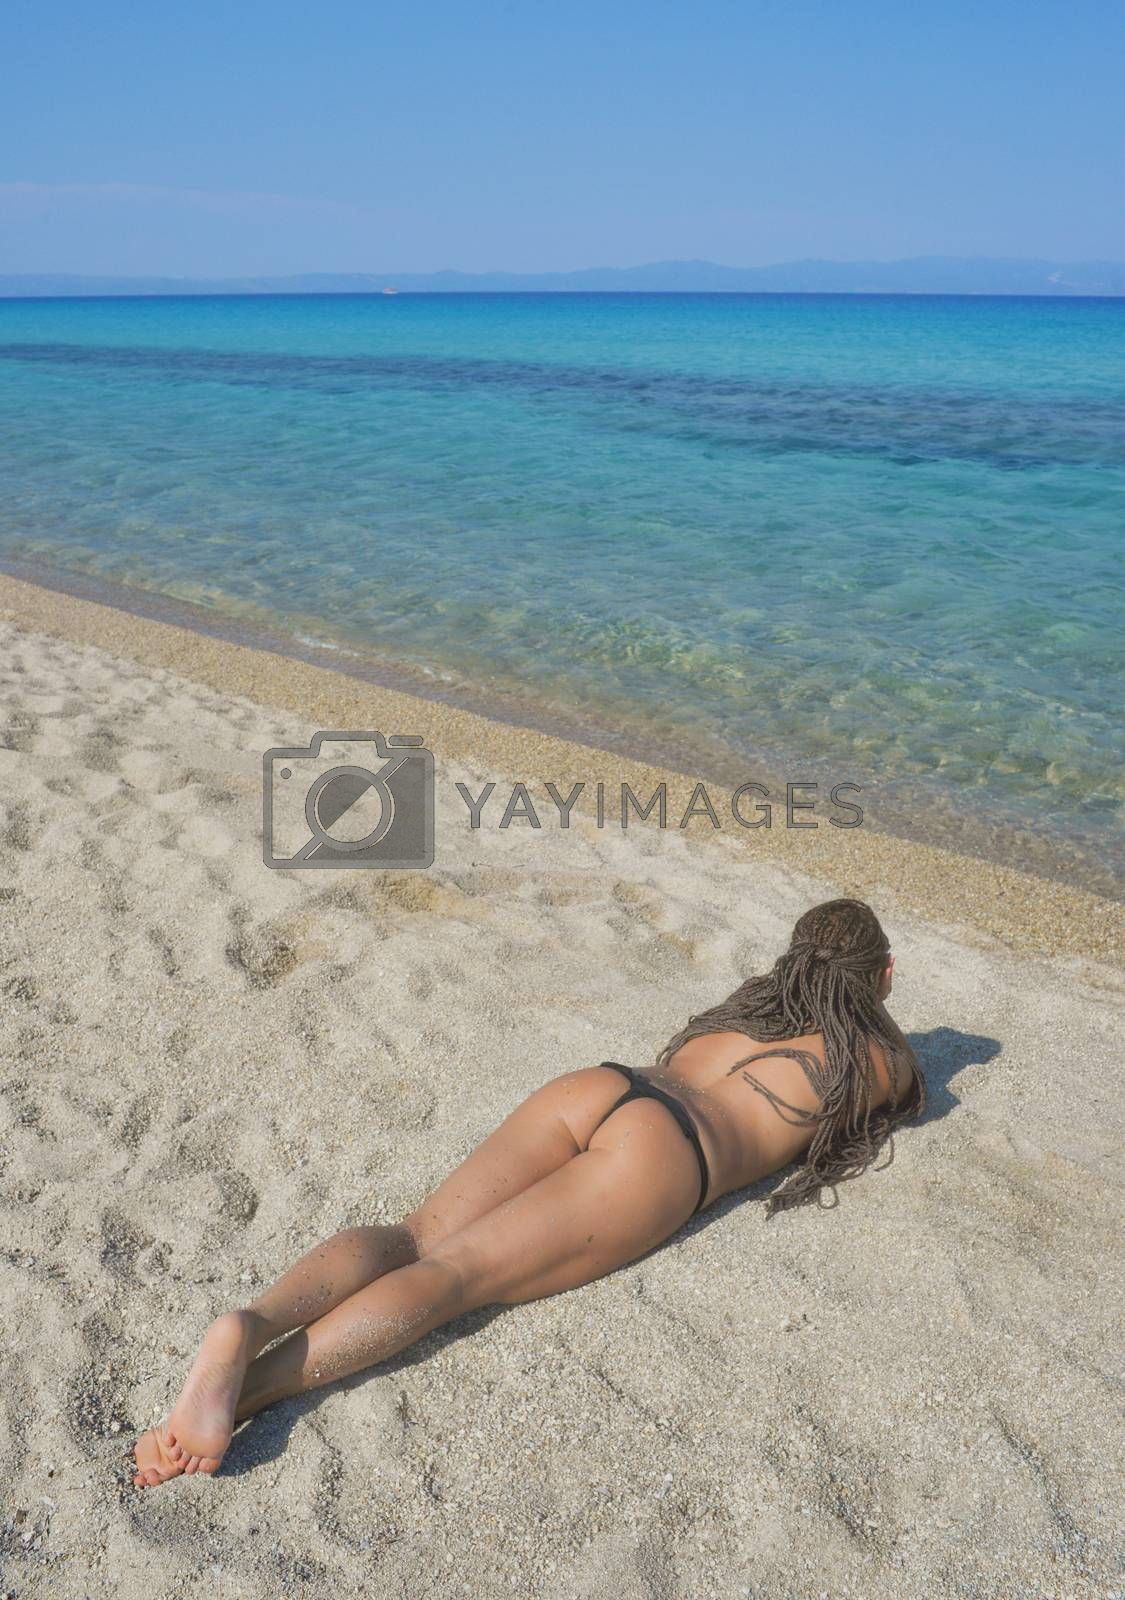 Girl with beautiful body with bikini is lying on the beach.